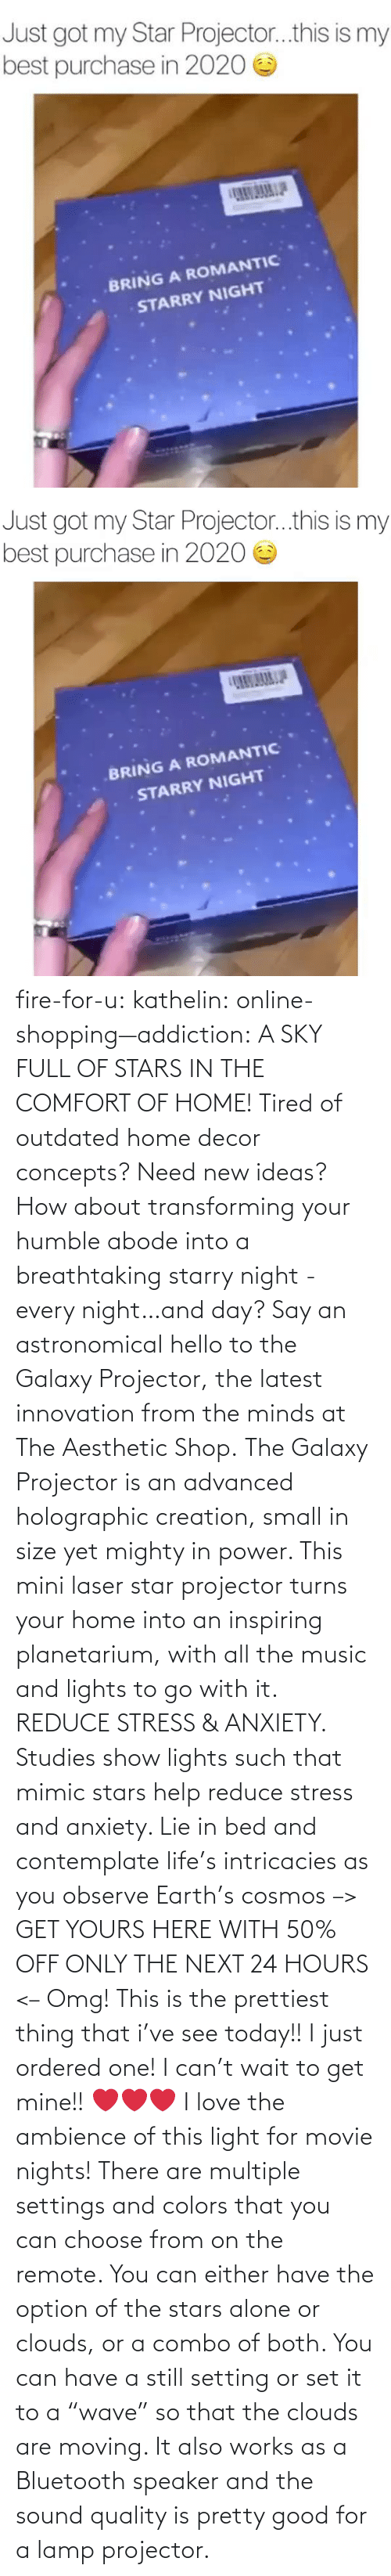 "Being alone: fire-for-u:  kathelin: online-shopping—addiction:  A SKY FULL OF STARS IN THE COMFORT OF HOME! Tired of outdated home decor concepts? Need new ideas? How about transforming your humble abode into a breathtaking starry night - every night…and day? Say an astronomical hello to the Galaxy Projector, the latest innovation from the minds at The Aesthetic Shop. The Galaxy Projector is an advanced holographic creation, small in size yet mighty in power. This mini laser star projector turns your home into an inspiring planetarium, with all the music and lights to go with it. REDUCE STRESS & ANXIETY. Studies show lights such that mimic stars help reduce stress and anxiety. Lie in bed and contemplate life's intricacies as you observe Earth's cosmos  –> GET YOURS HERE WITH 50% OFF ONLY THE NEXT 24 HOURS <–   Omg! This is the prettiest thing that i've see today!! I just ordered one! I can't wait to get mine!! ❤️️❤️️❤️️  I love the ambience of this light for movie nights! There are multiple settings and colors that you can choose from on the remote. You can either have the option of the stars alone or clouds, or a combo of both. You can have a still setting or set it to a ""wave"" so that the clouds are moving. It also works as a Bluetooth speaker and the sound quality is pretty good for a lamp projector."